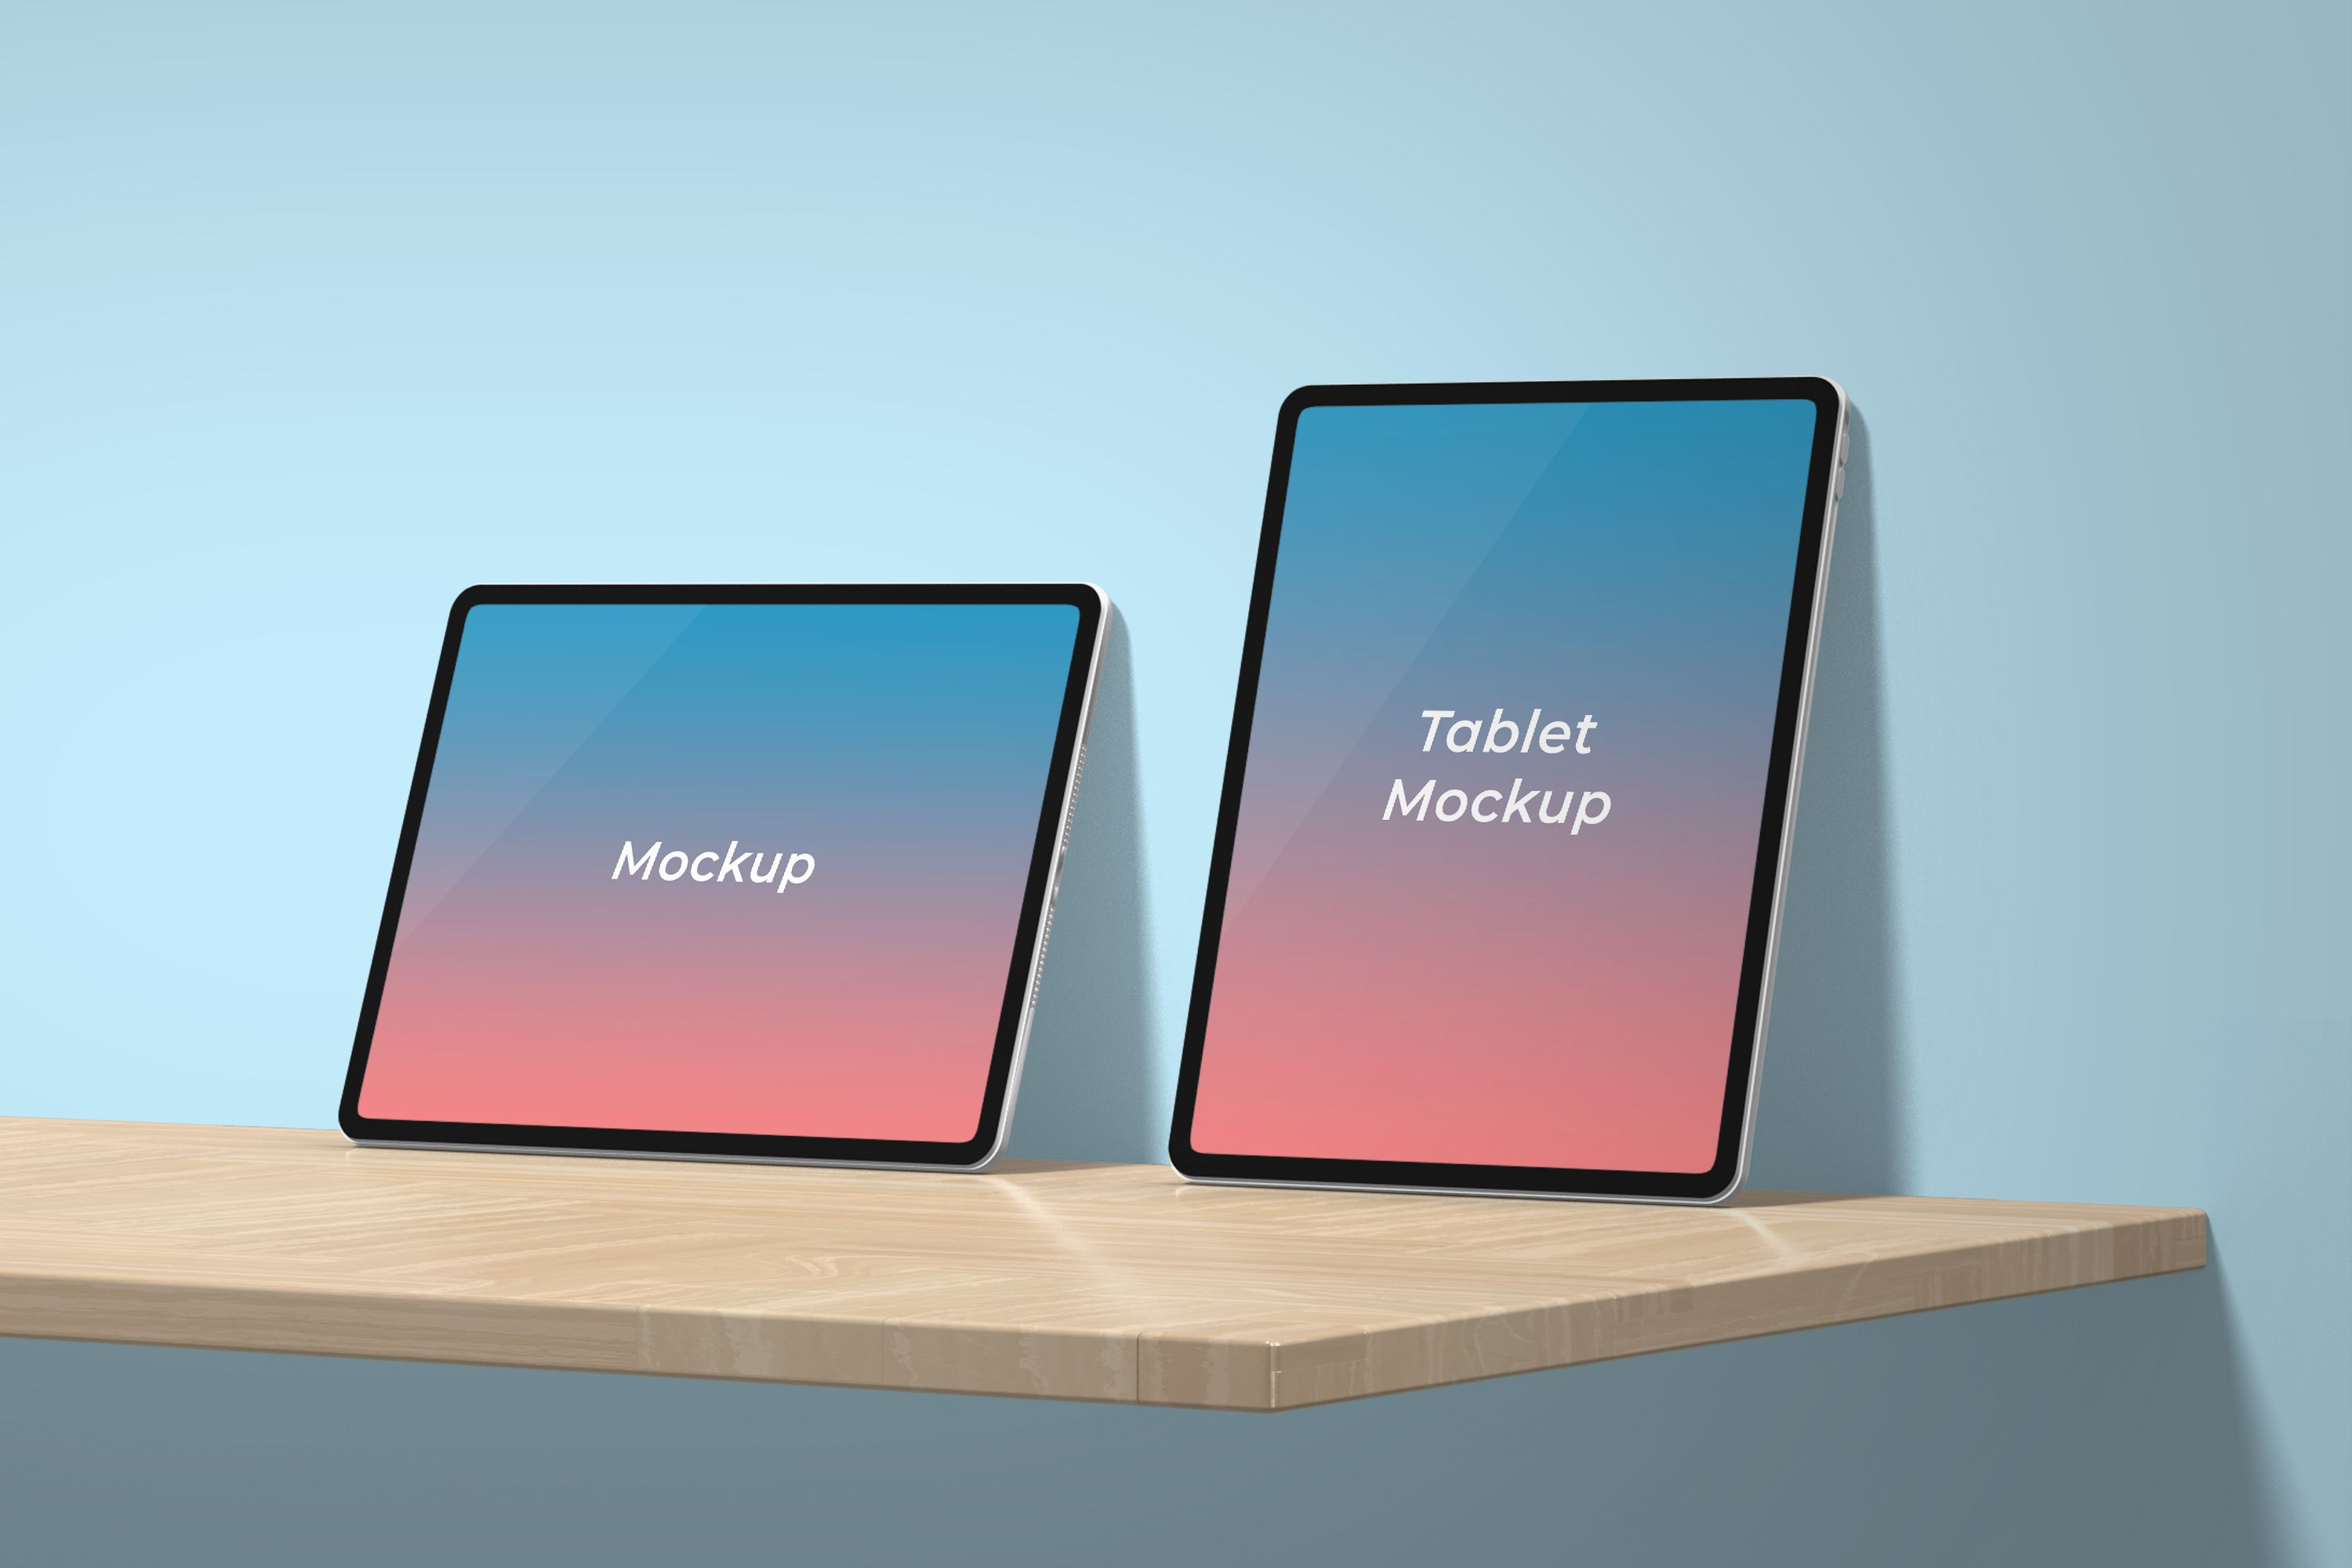 Close Up On Tablets Mockup On A Shelf In 2020 Cyber Monday Laptop Laptops For Sale Tablet